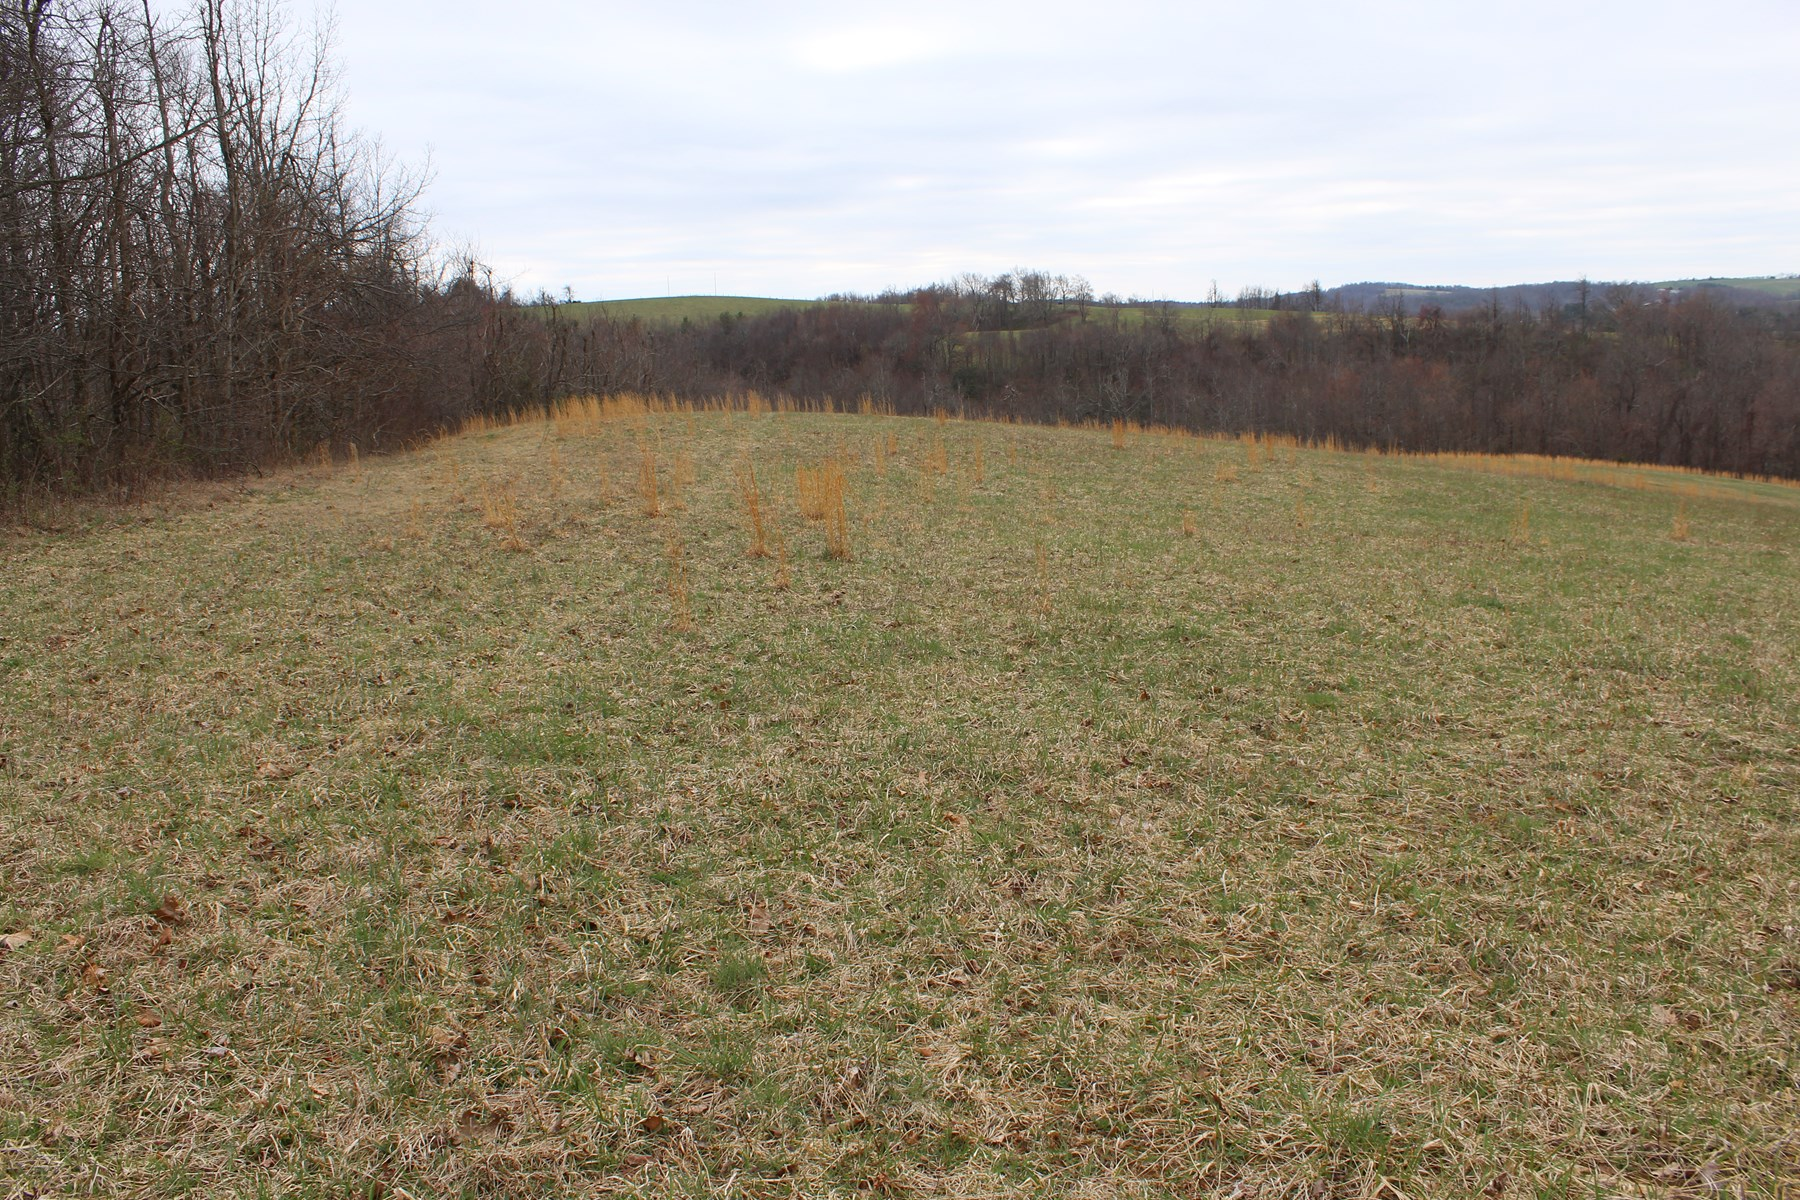 34.2  ACRES LOCATED IN PATRICK COUNTY, VIRGINA